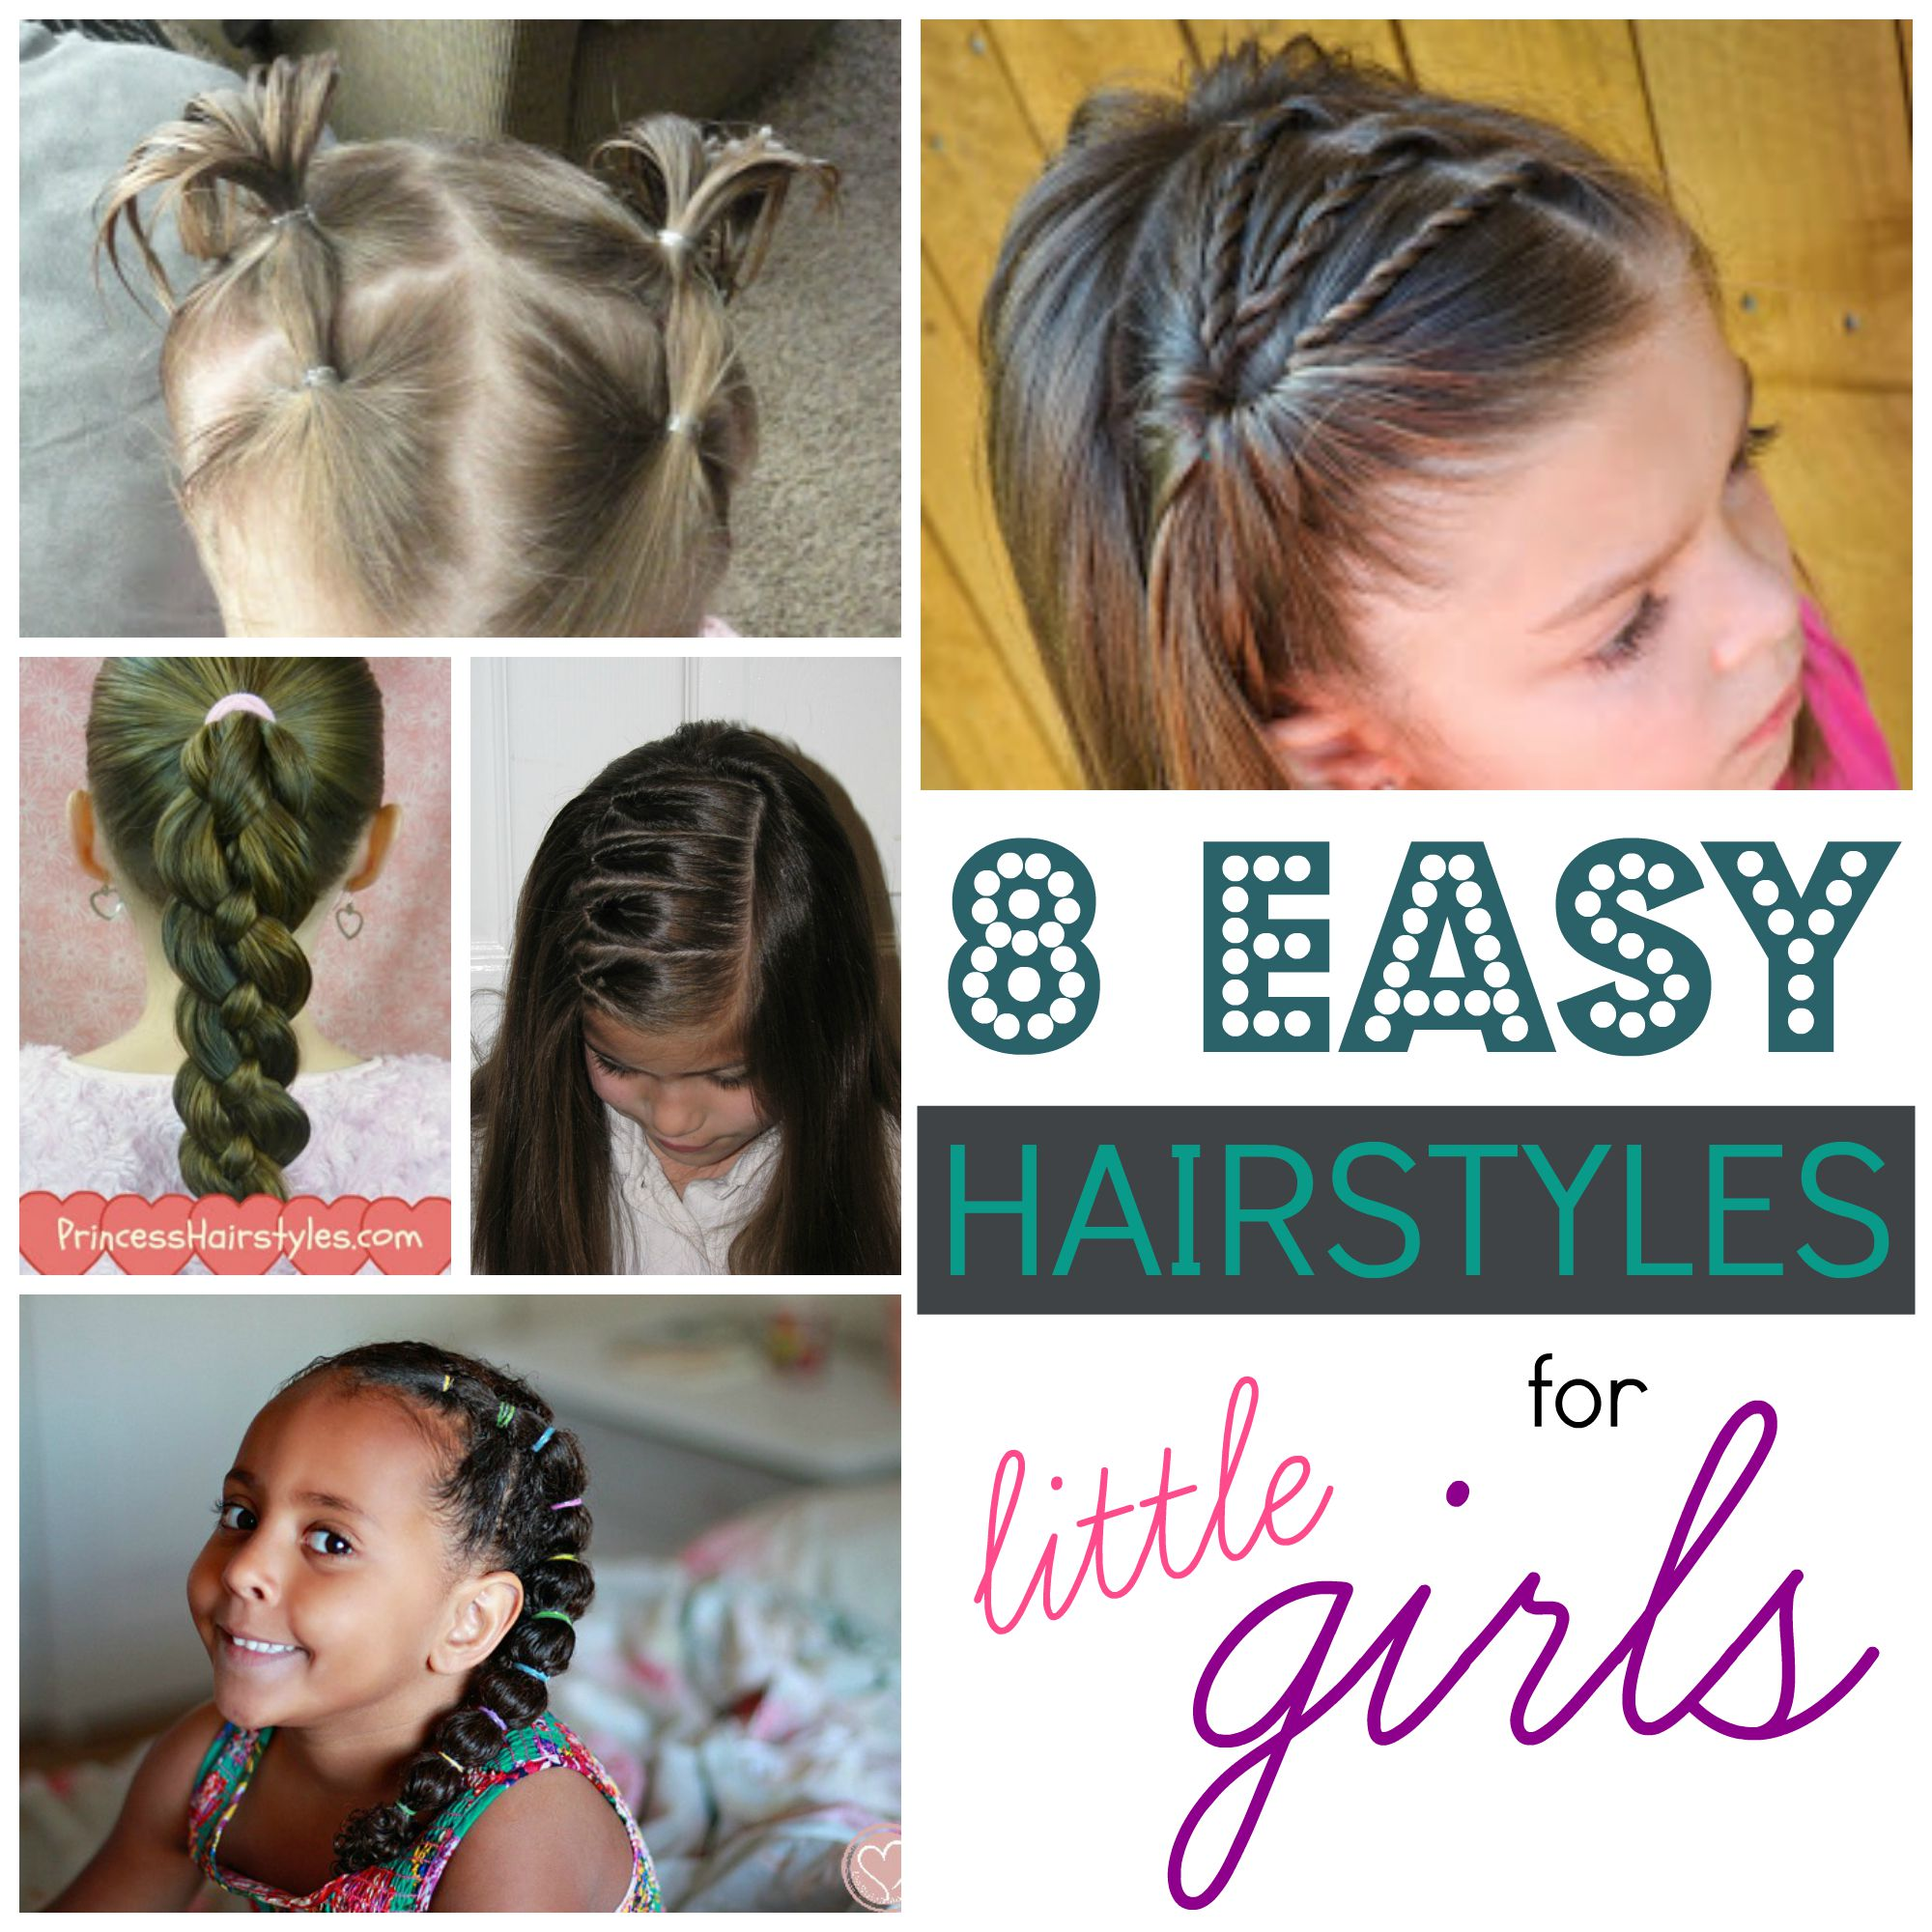 Cute Girl Hairstyles Youtube: 8 Easy Hairstyles For Little Girls